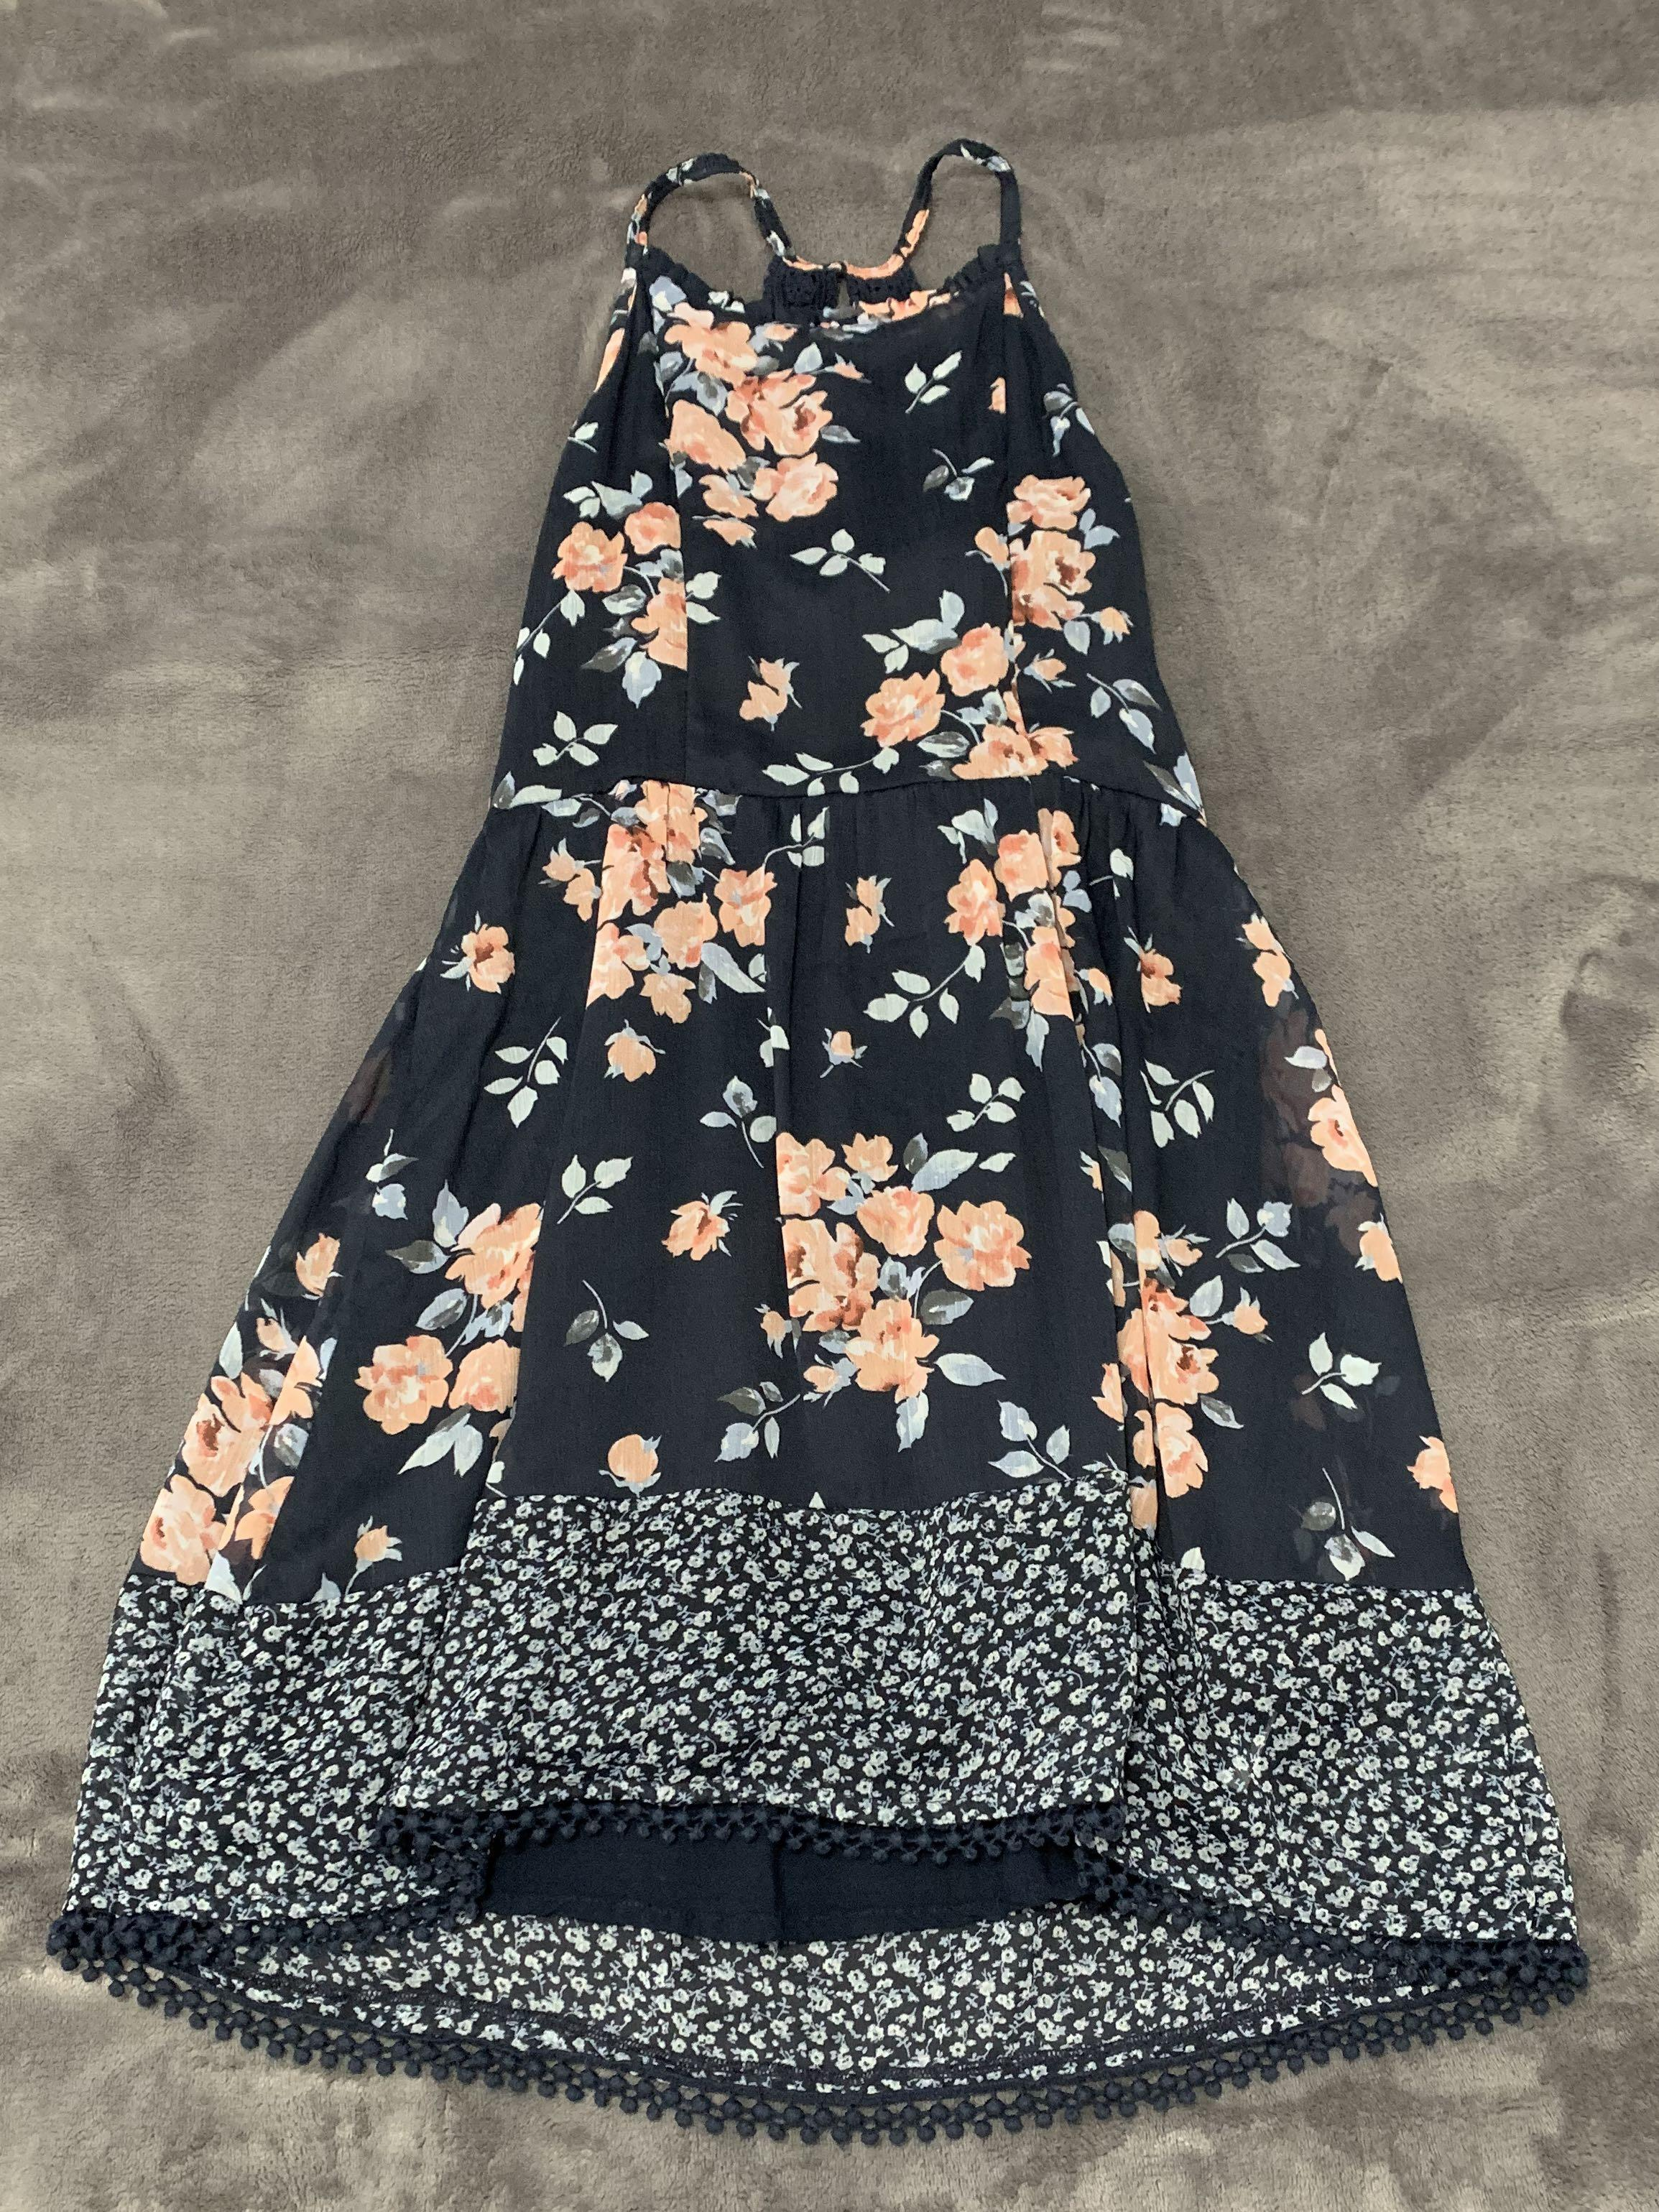 Abercrombie Kids Spring Flower Dress